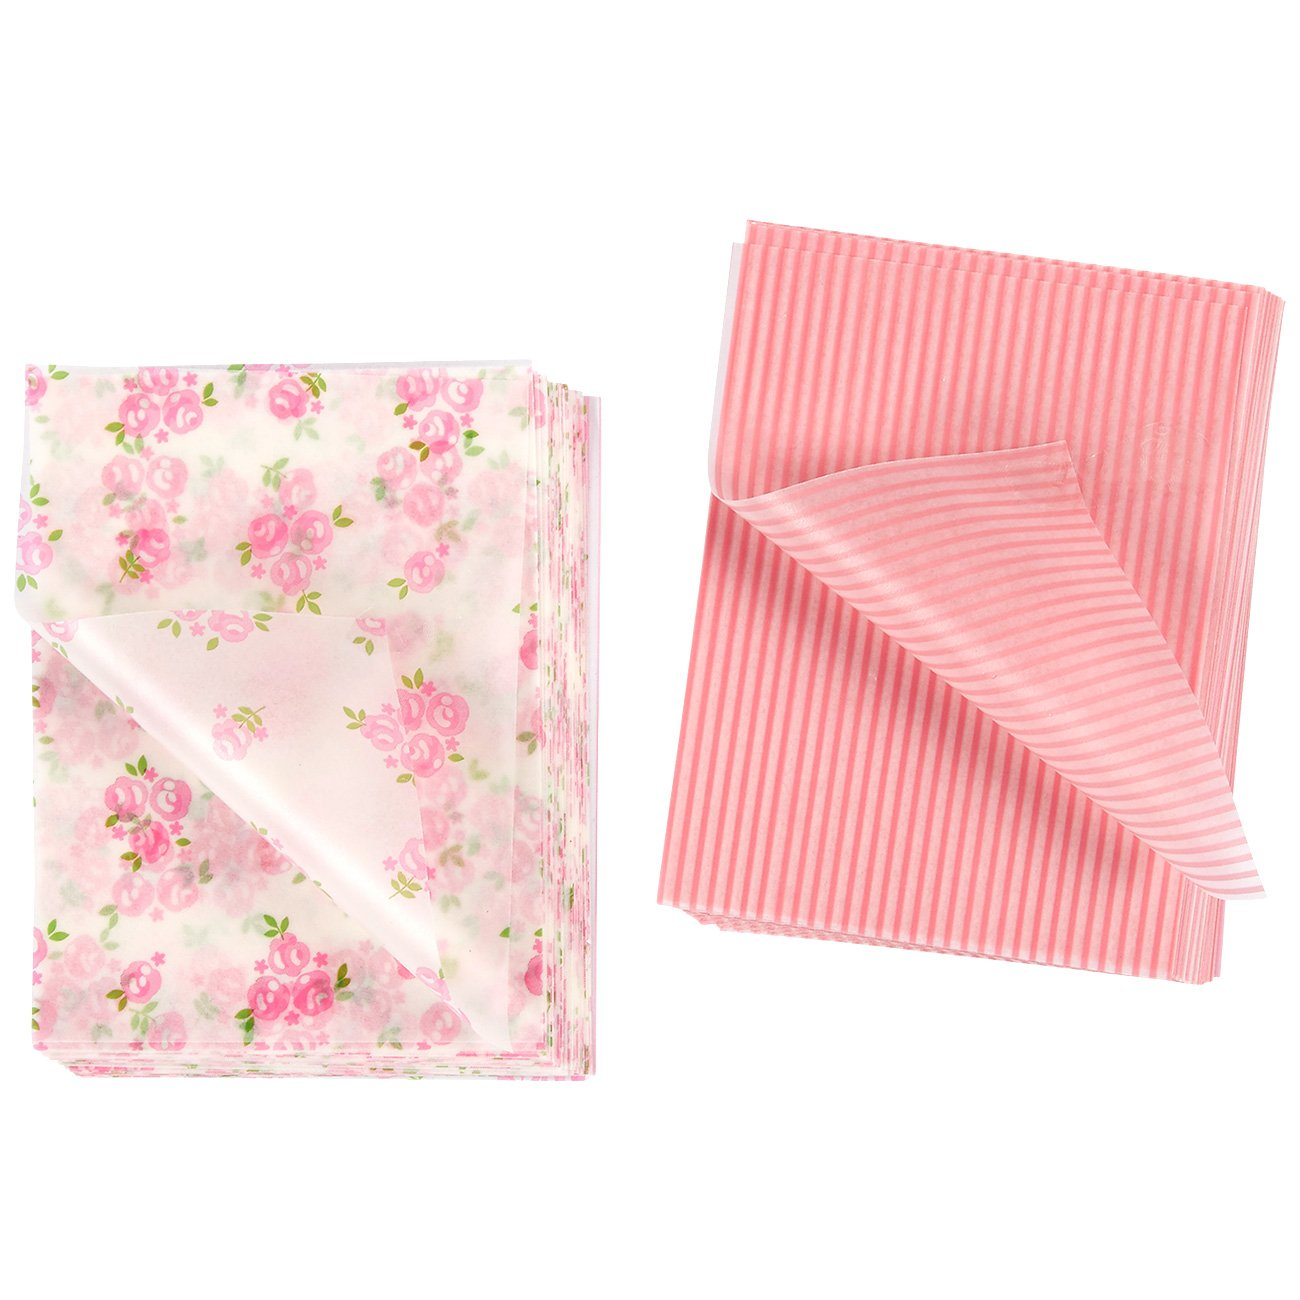 Candy Wrapper - 200-Sheet Chocolate, Caramel, and Lollipop Candy Wrappers, Nougat Twisting Wax Paper in Pink and White Stripe and Rose Pattern, 4.75 x 3.5 Inches Juvale 4336874824